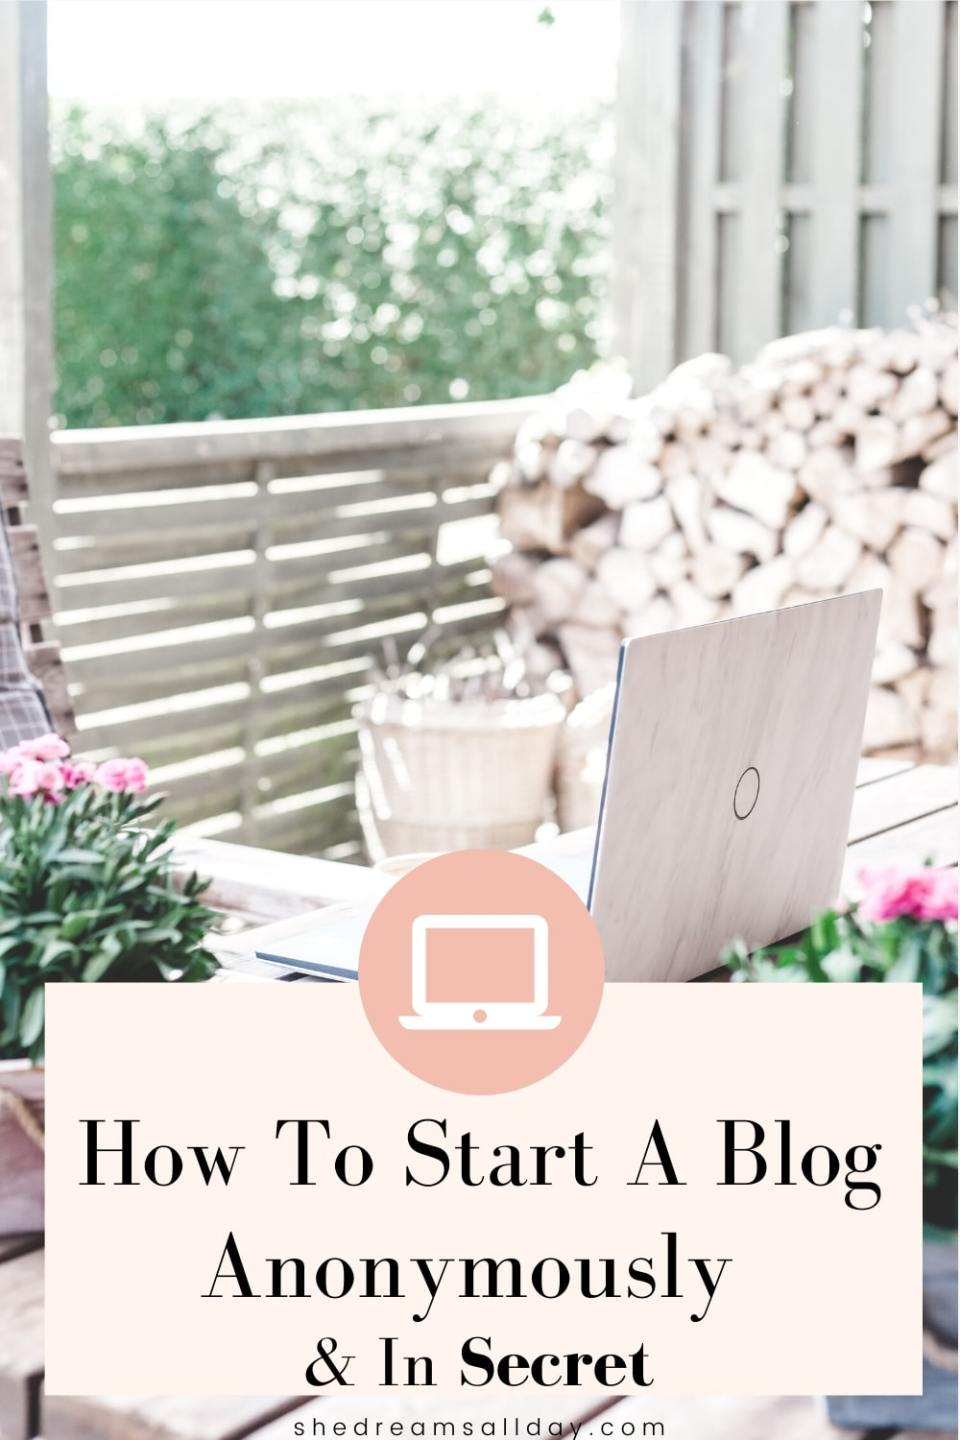 How To Start A Blog Anonymously And In Secret